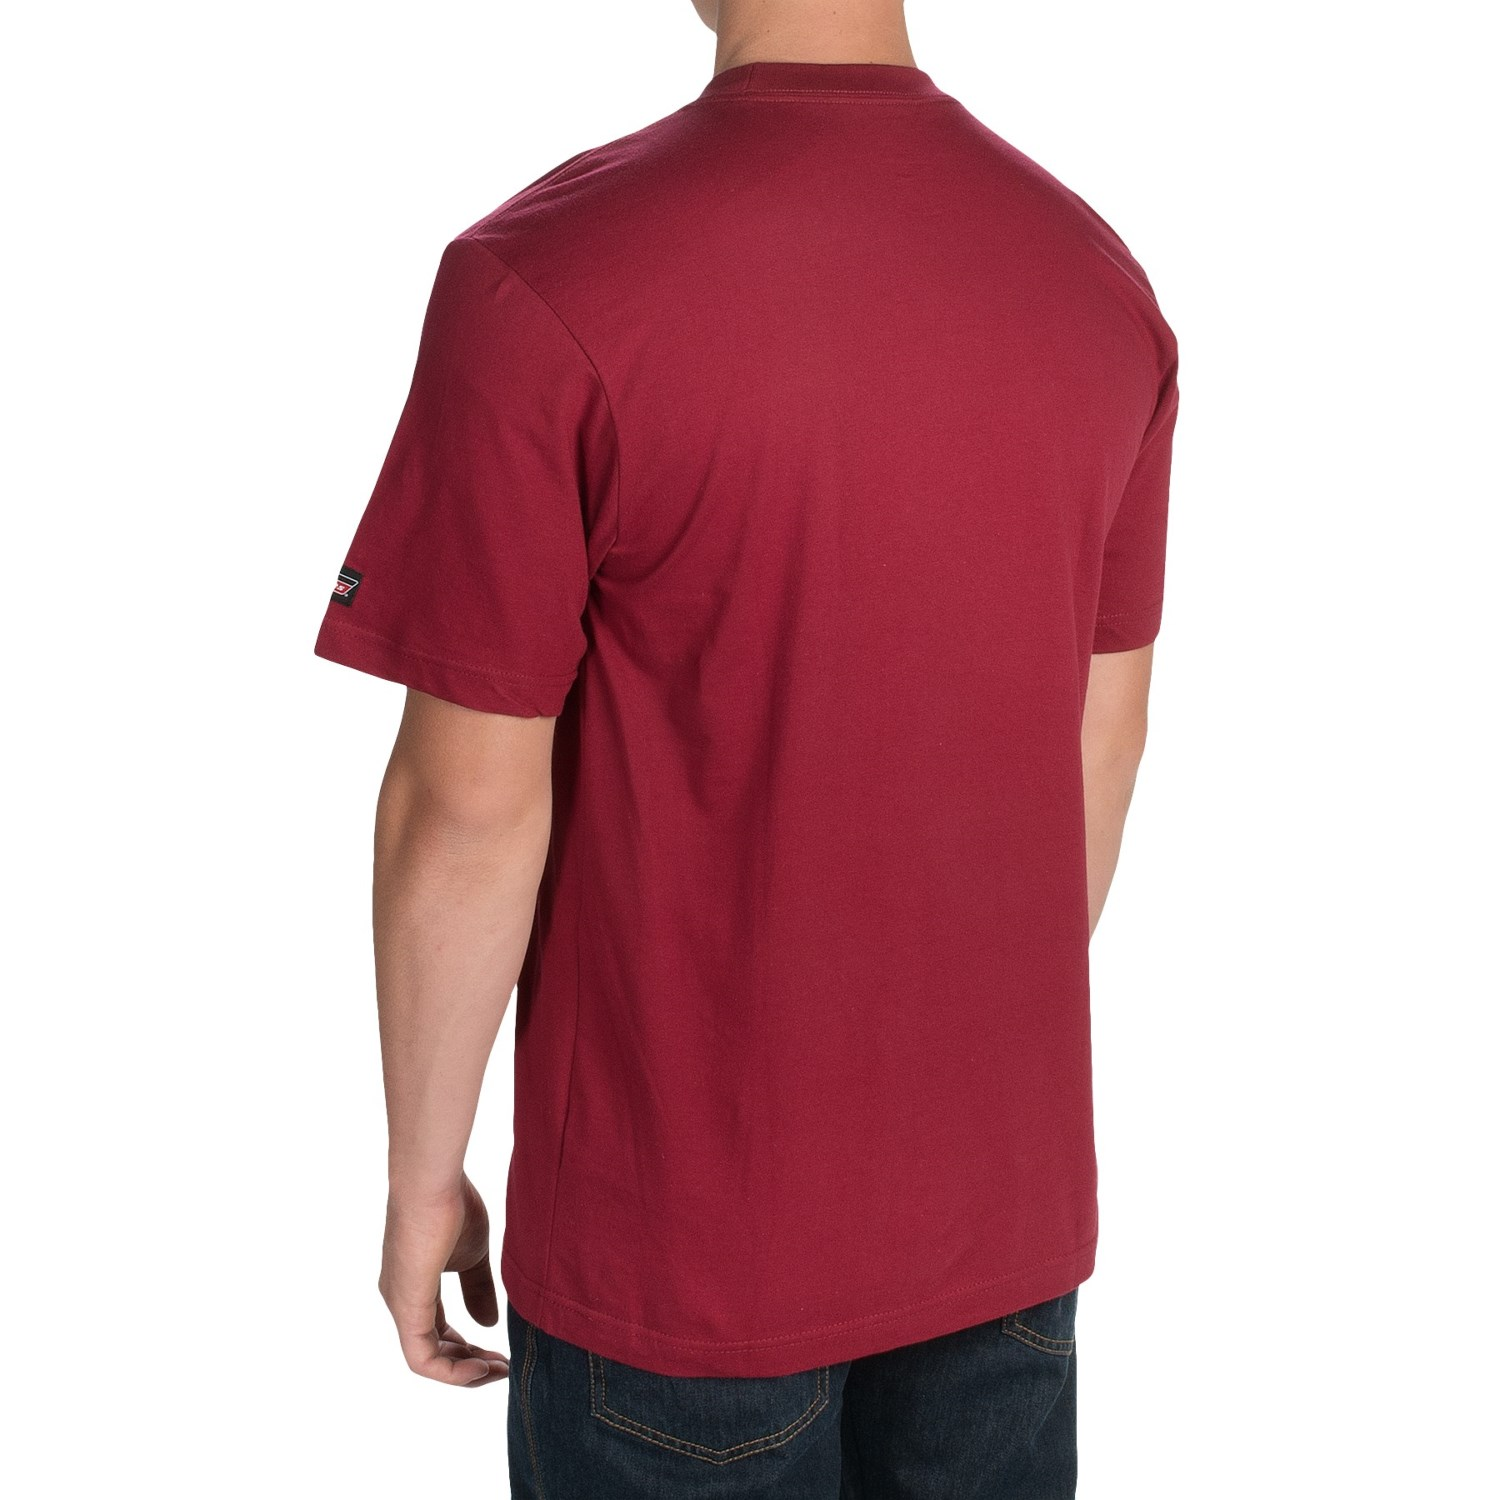 See all results for pocket t shirts for men. Fruit of the Loom. Men's Pocket T-Shirt Multipack. from $ 12 99 Prime. out of 5 stars 6, Fruit of the Loom. Men's 4-Pack Pocket Crew-Neck T-Shirt - Colors May Vary. from $ 19 88 Prime. out of 5 stars Carhartt.